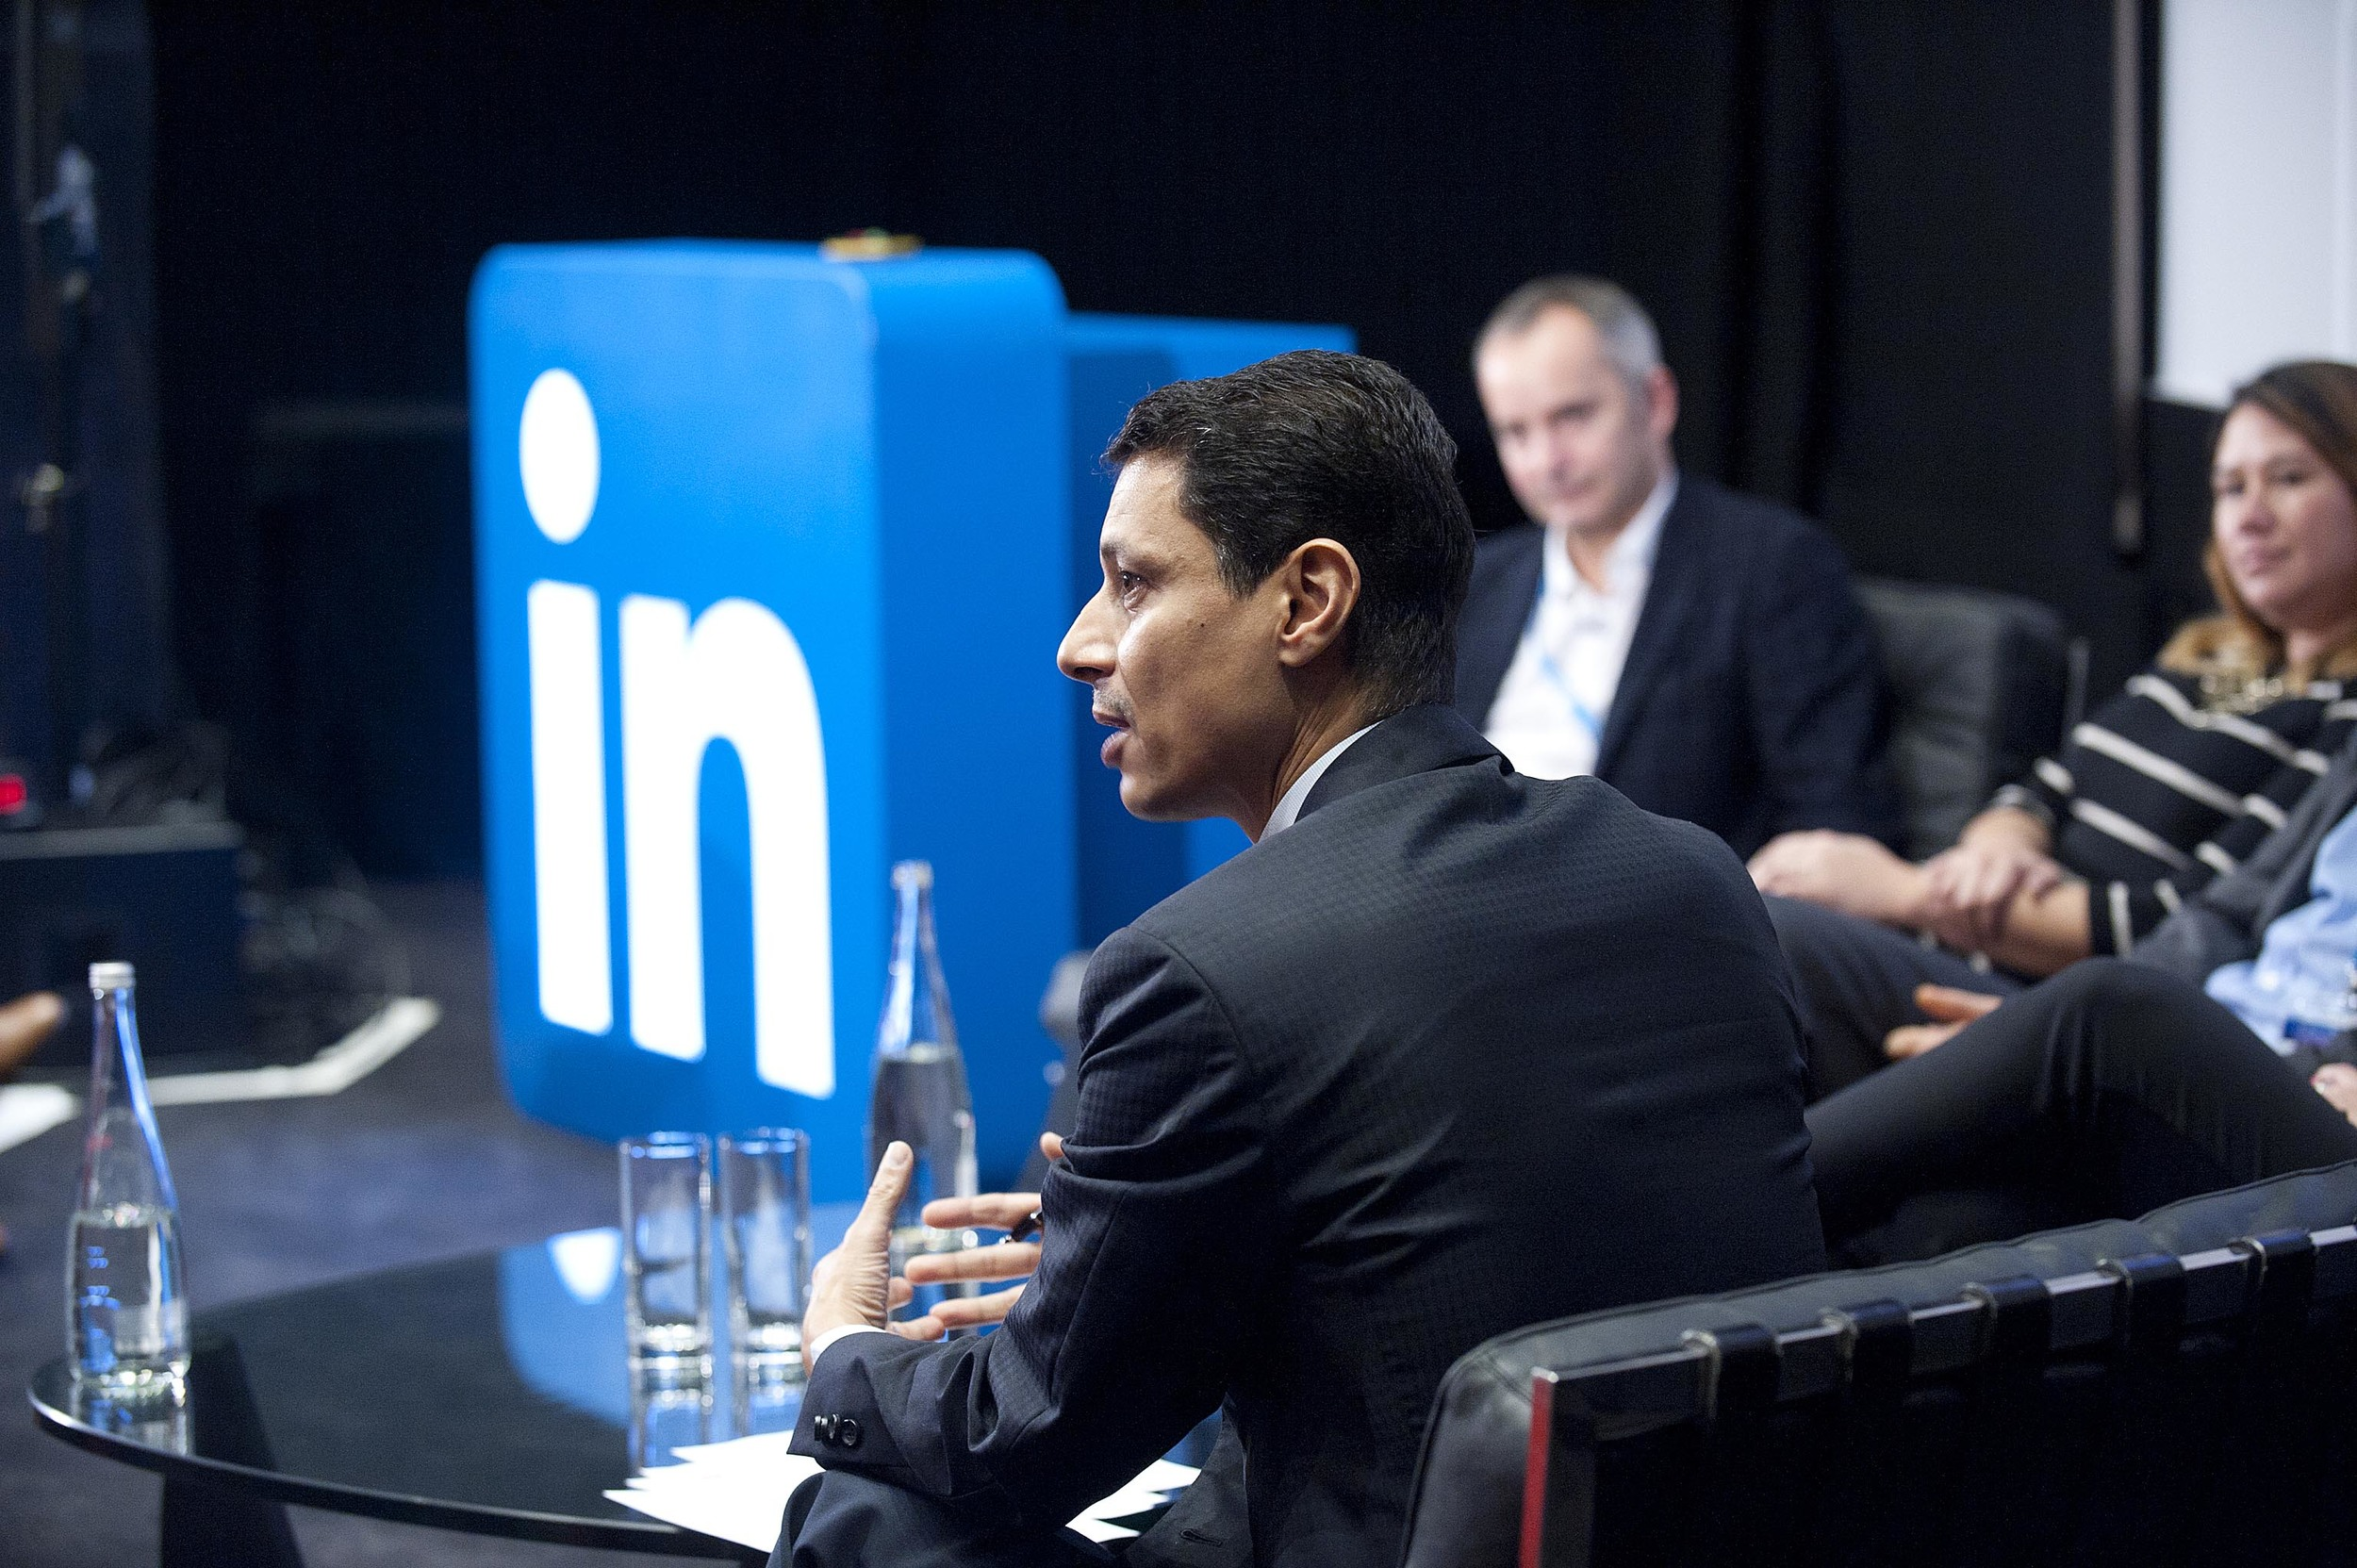 A businessman speaking at a Conference Event for Linkedin